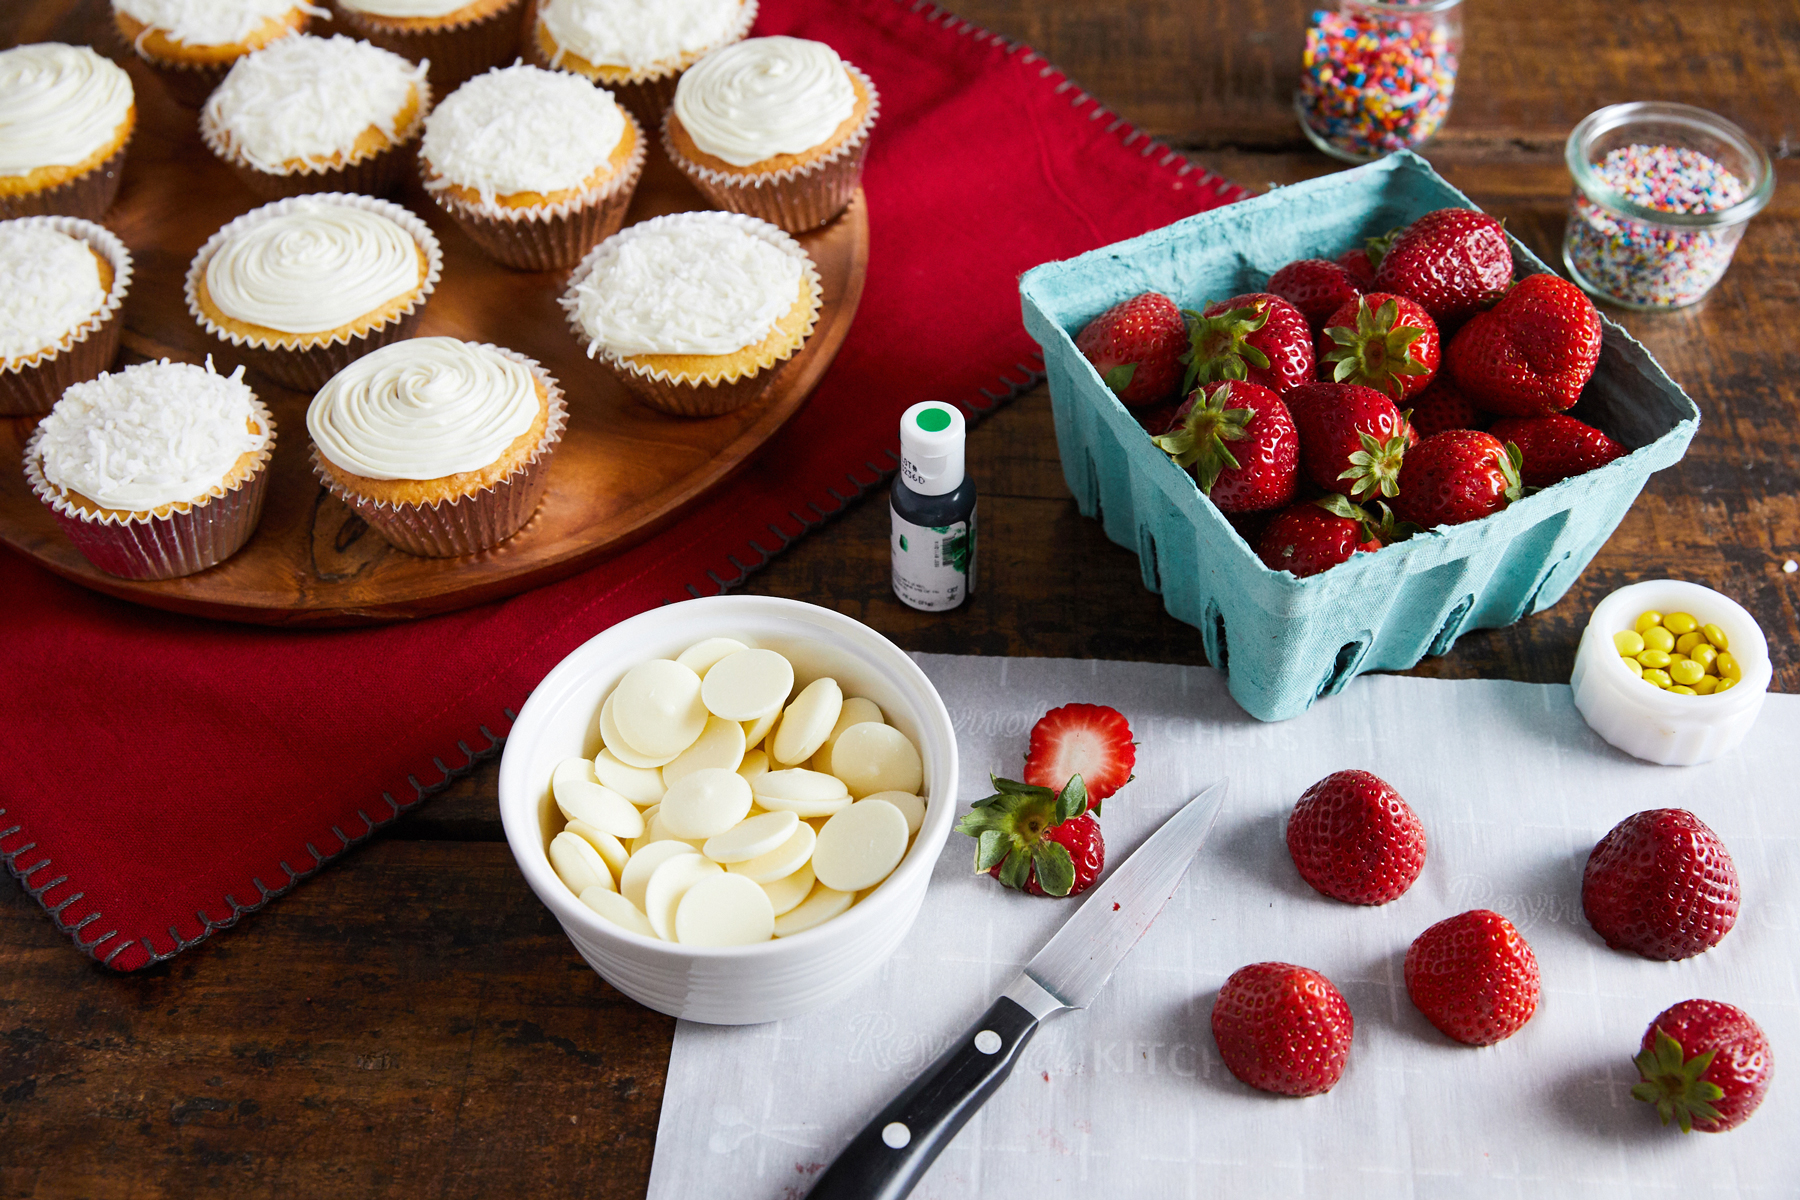 cut strawberries with vanilla cupcakes in background